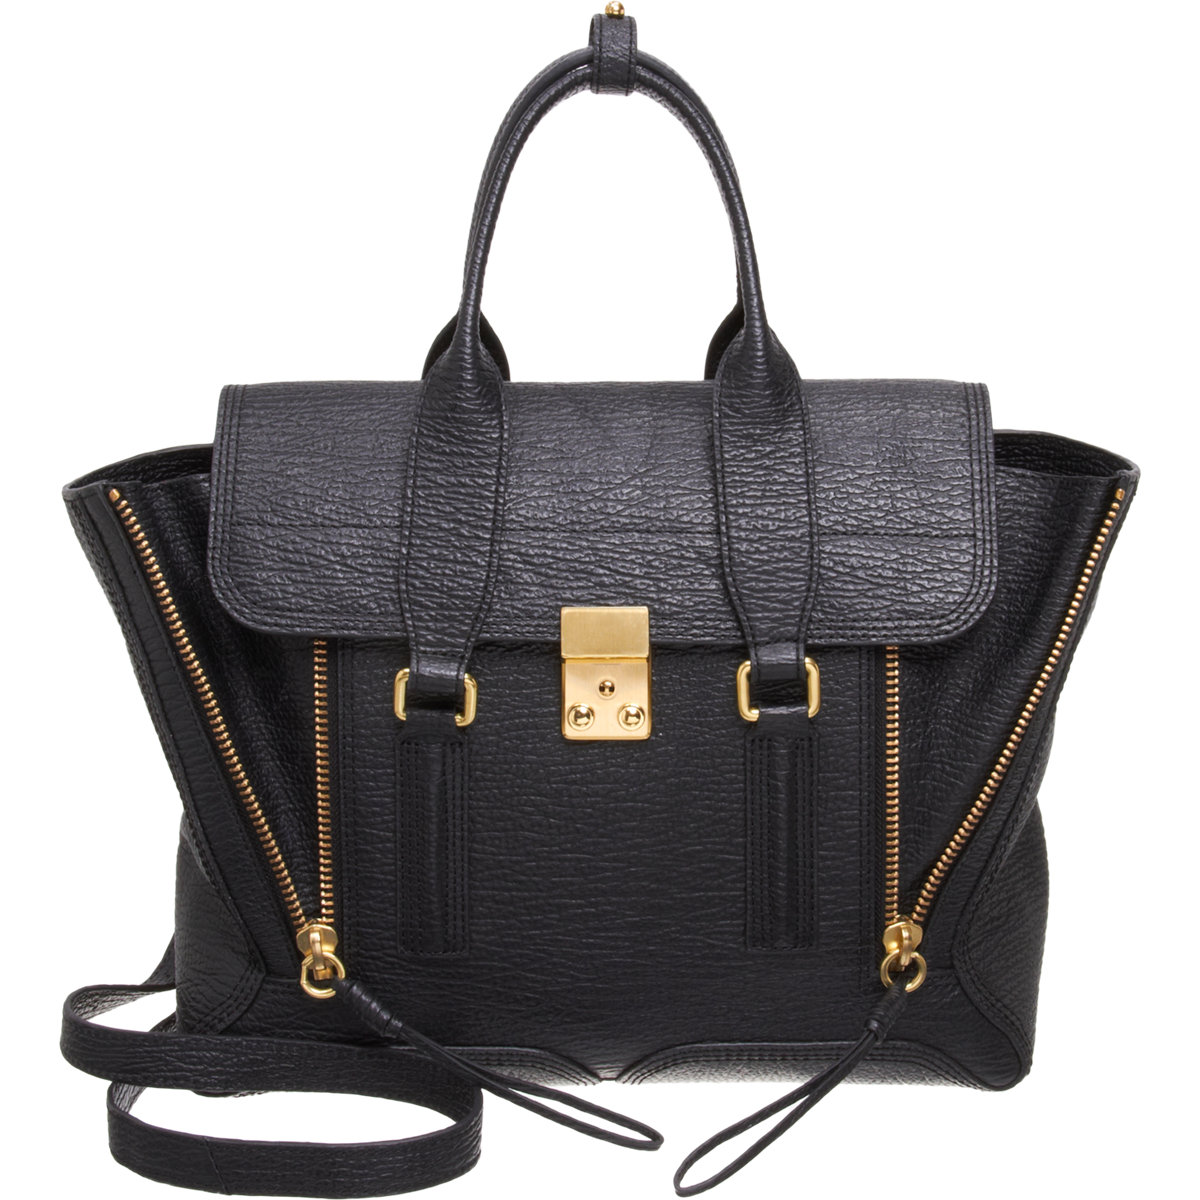 3.1 Phillip Lim Medium Pashli Satchel with Strap at Barneys.com